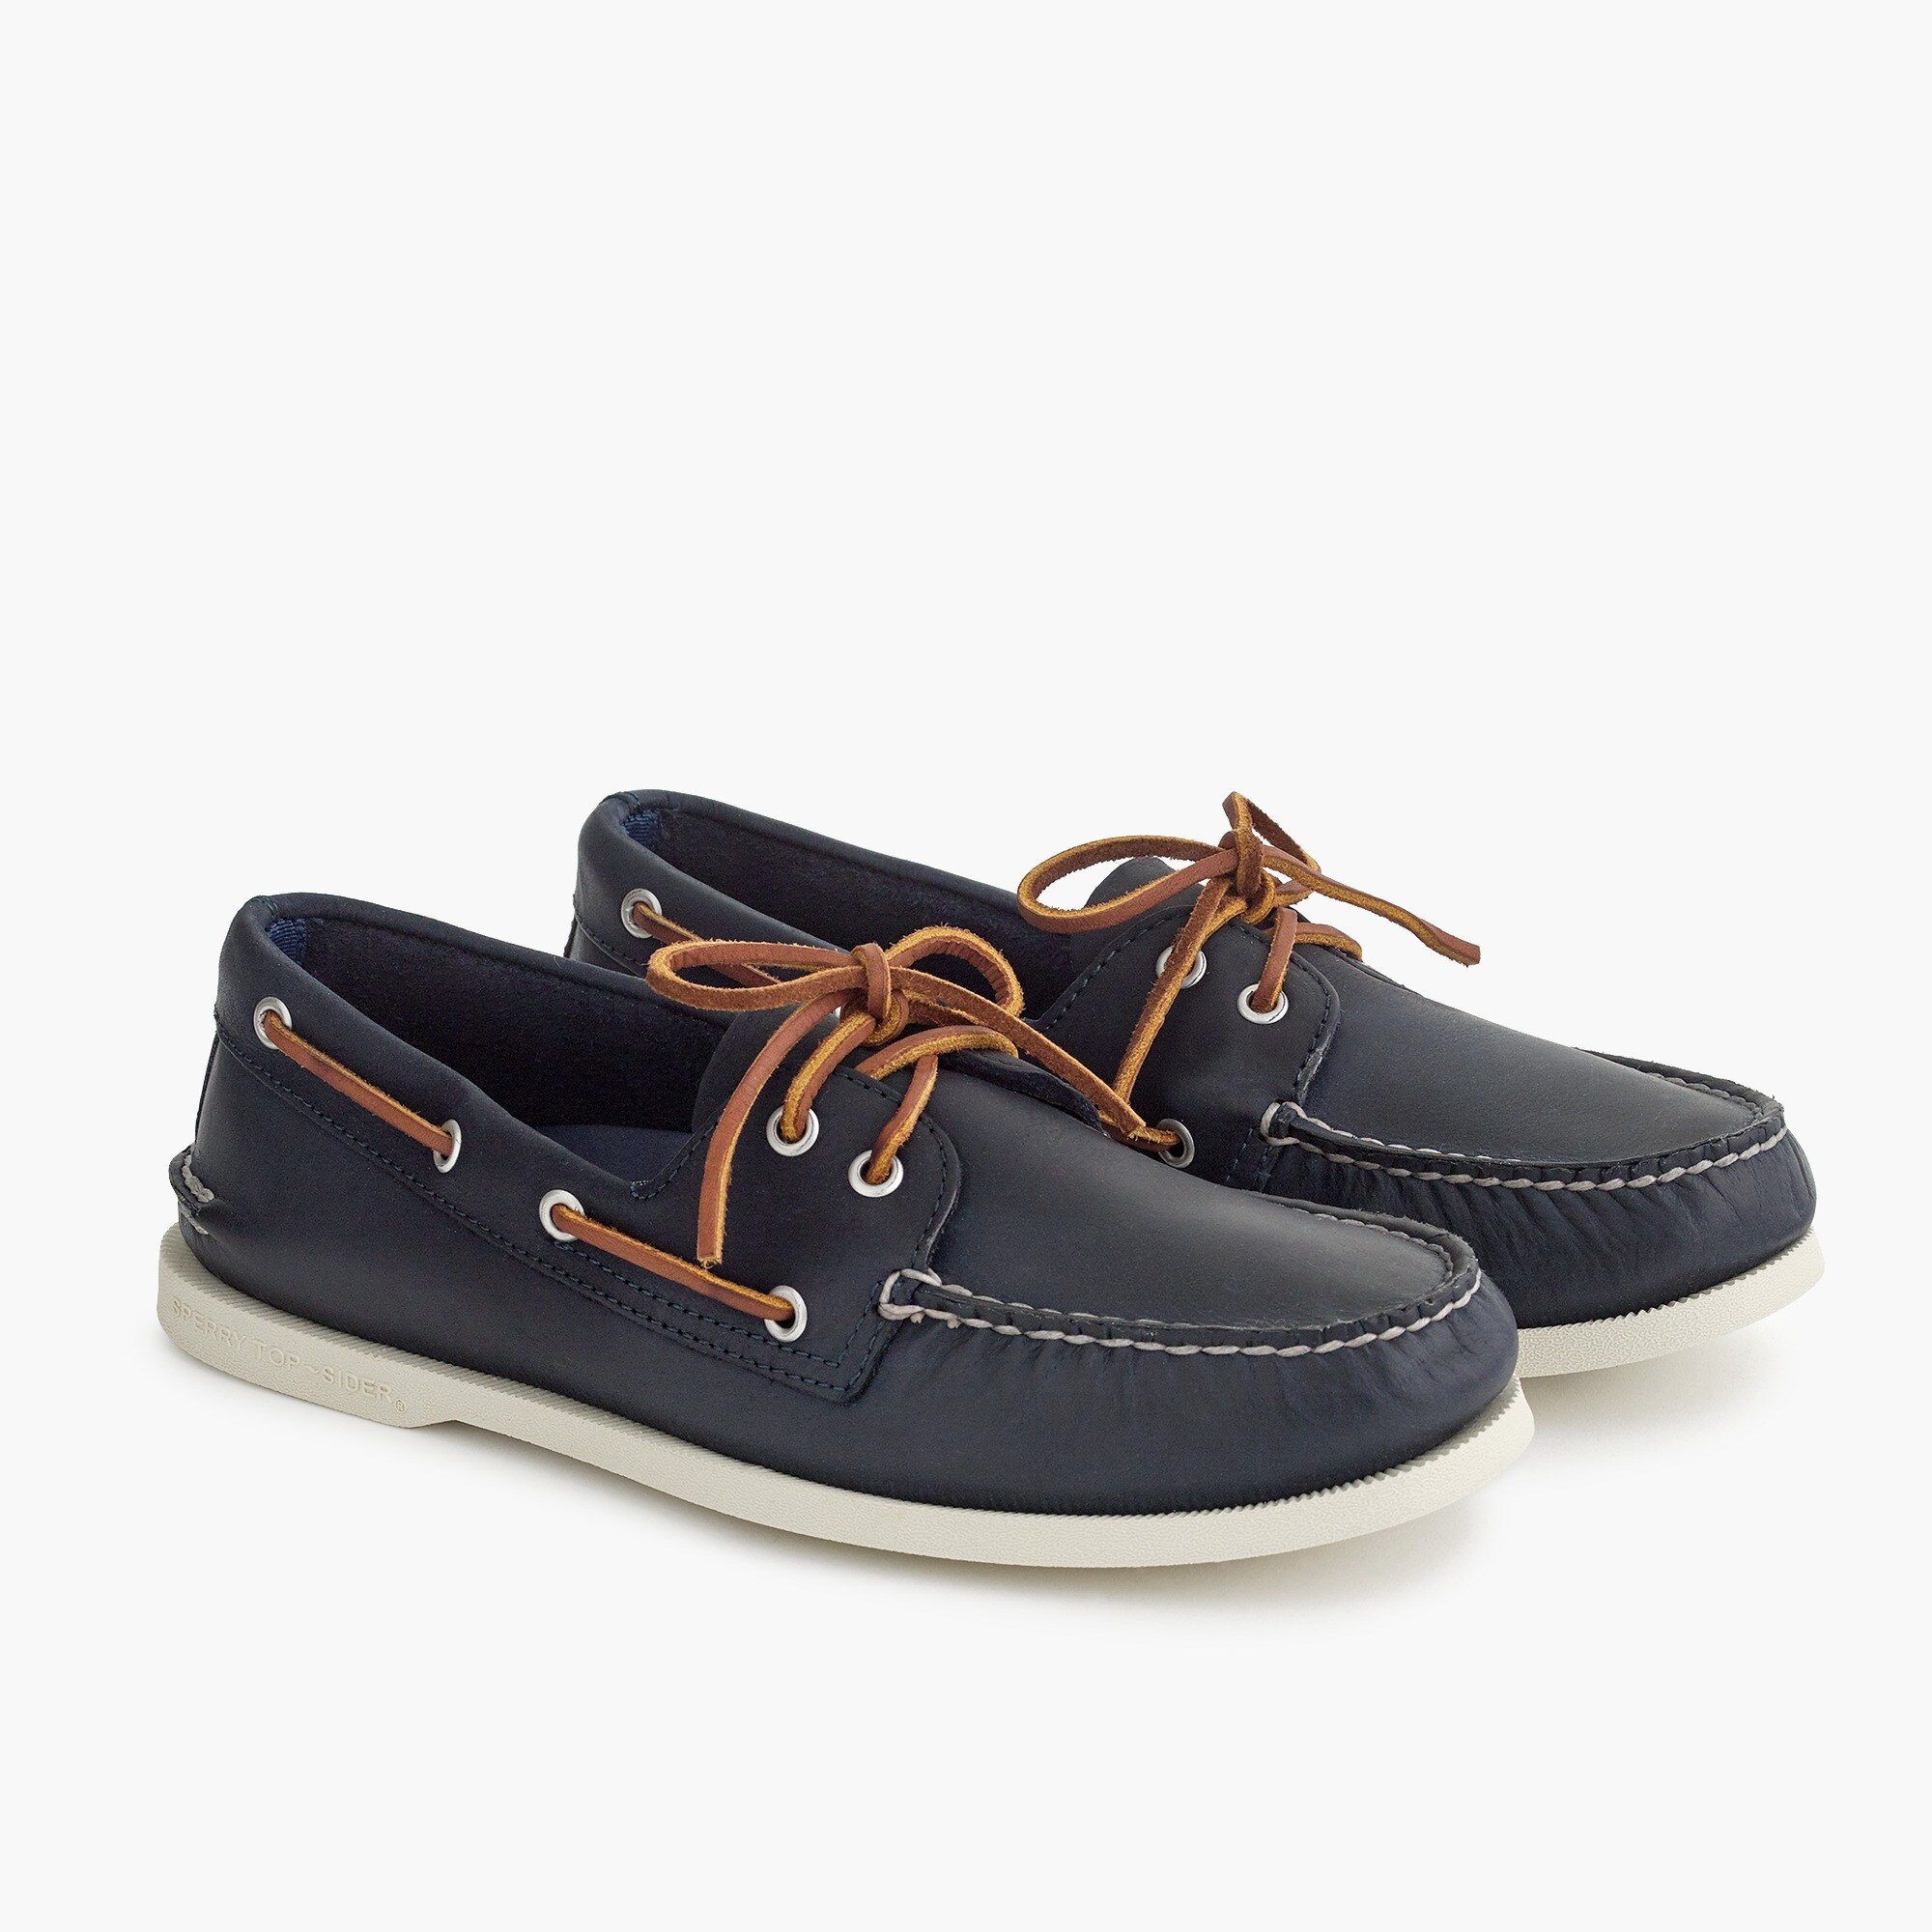 mens Sperry® for J.Crew Authentic Original 2-eye boat shoes in leather